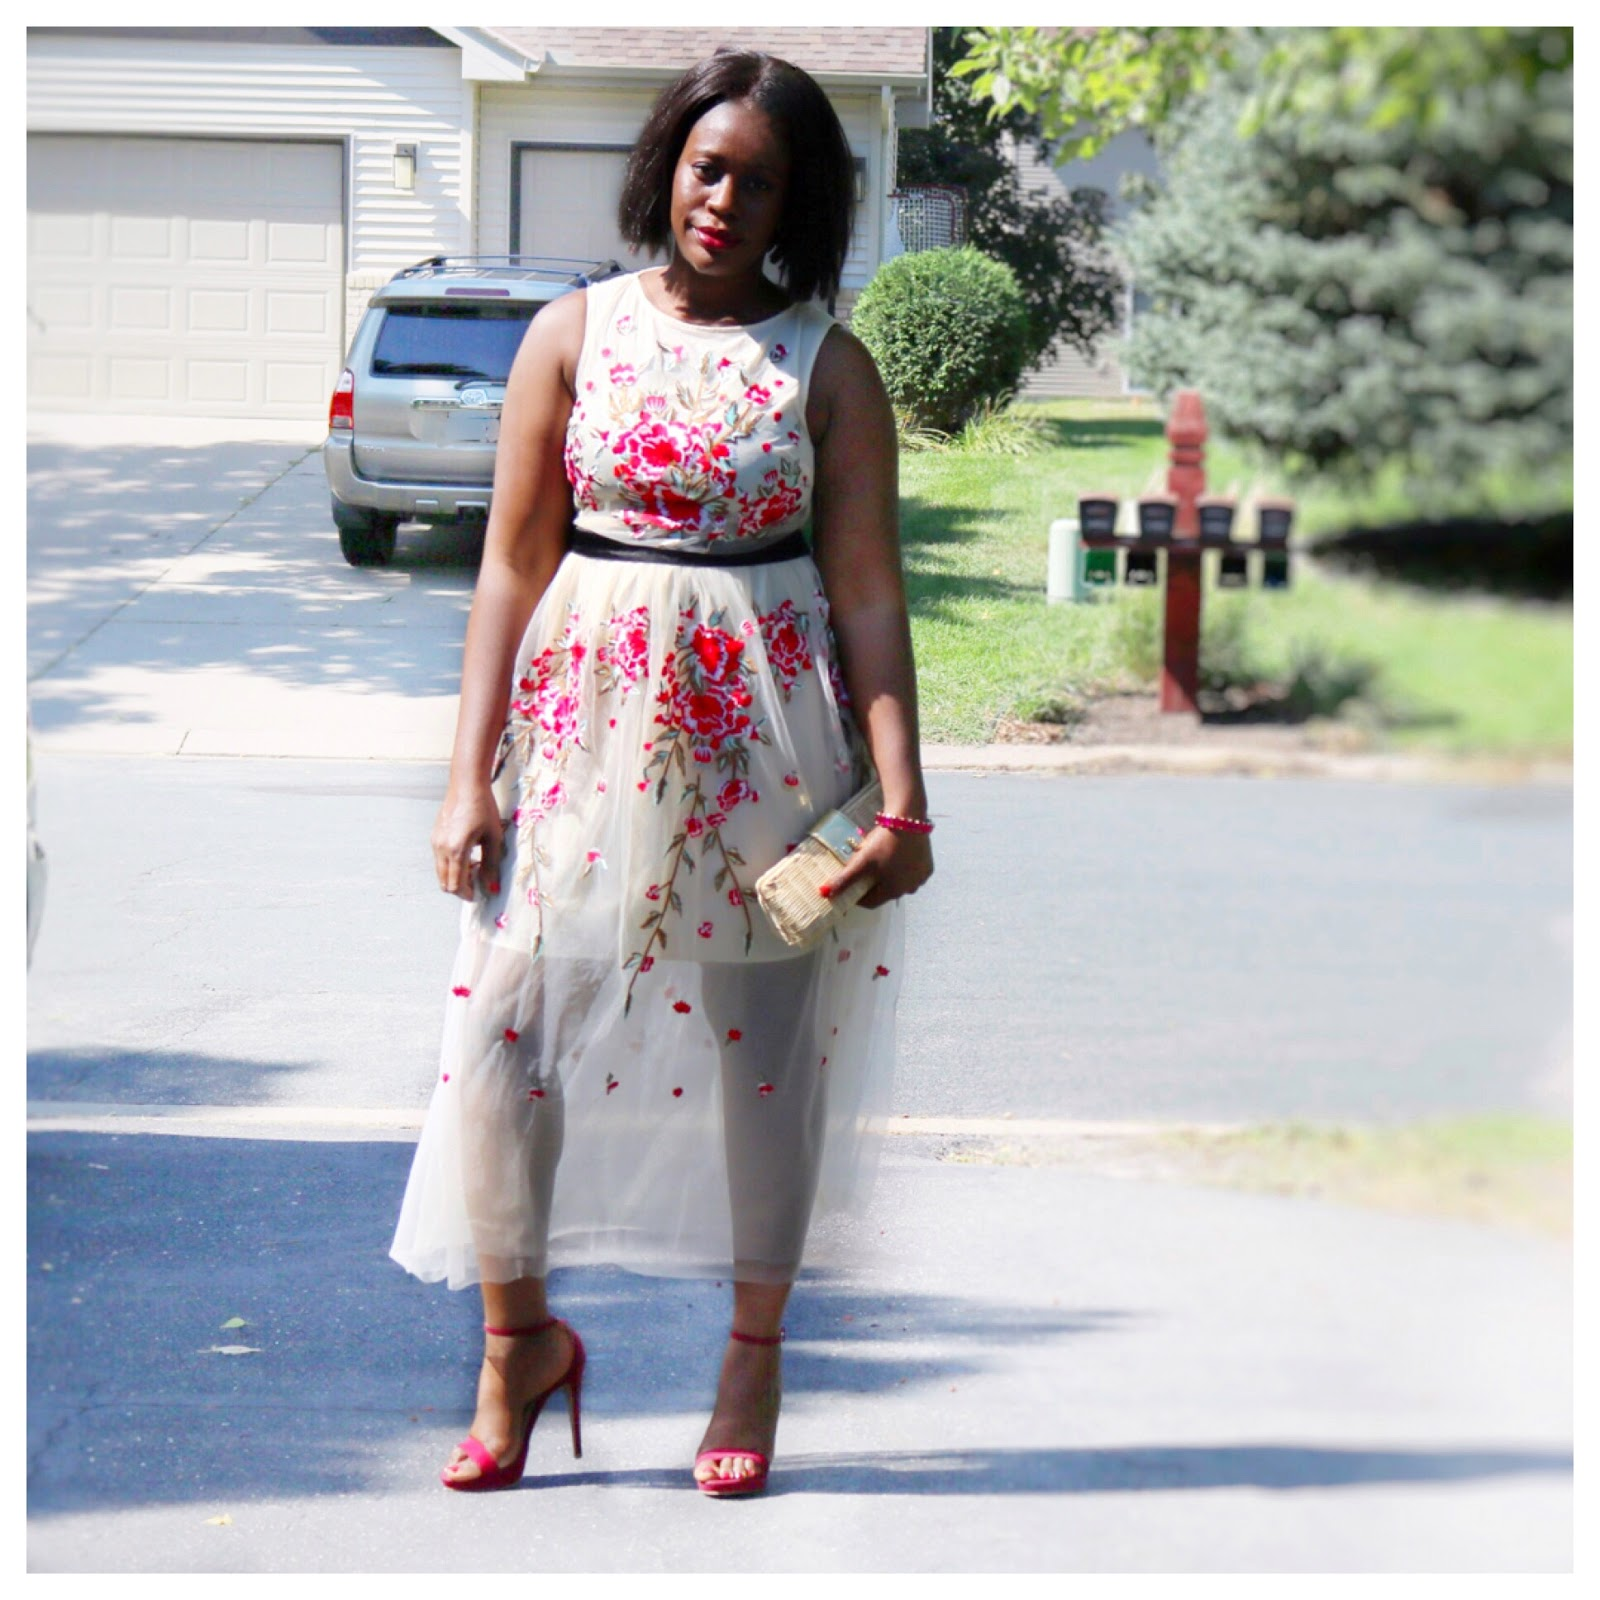 Beauty's Fashion Zone: Floral Tulle Lace Dress + Straw Clutch